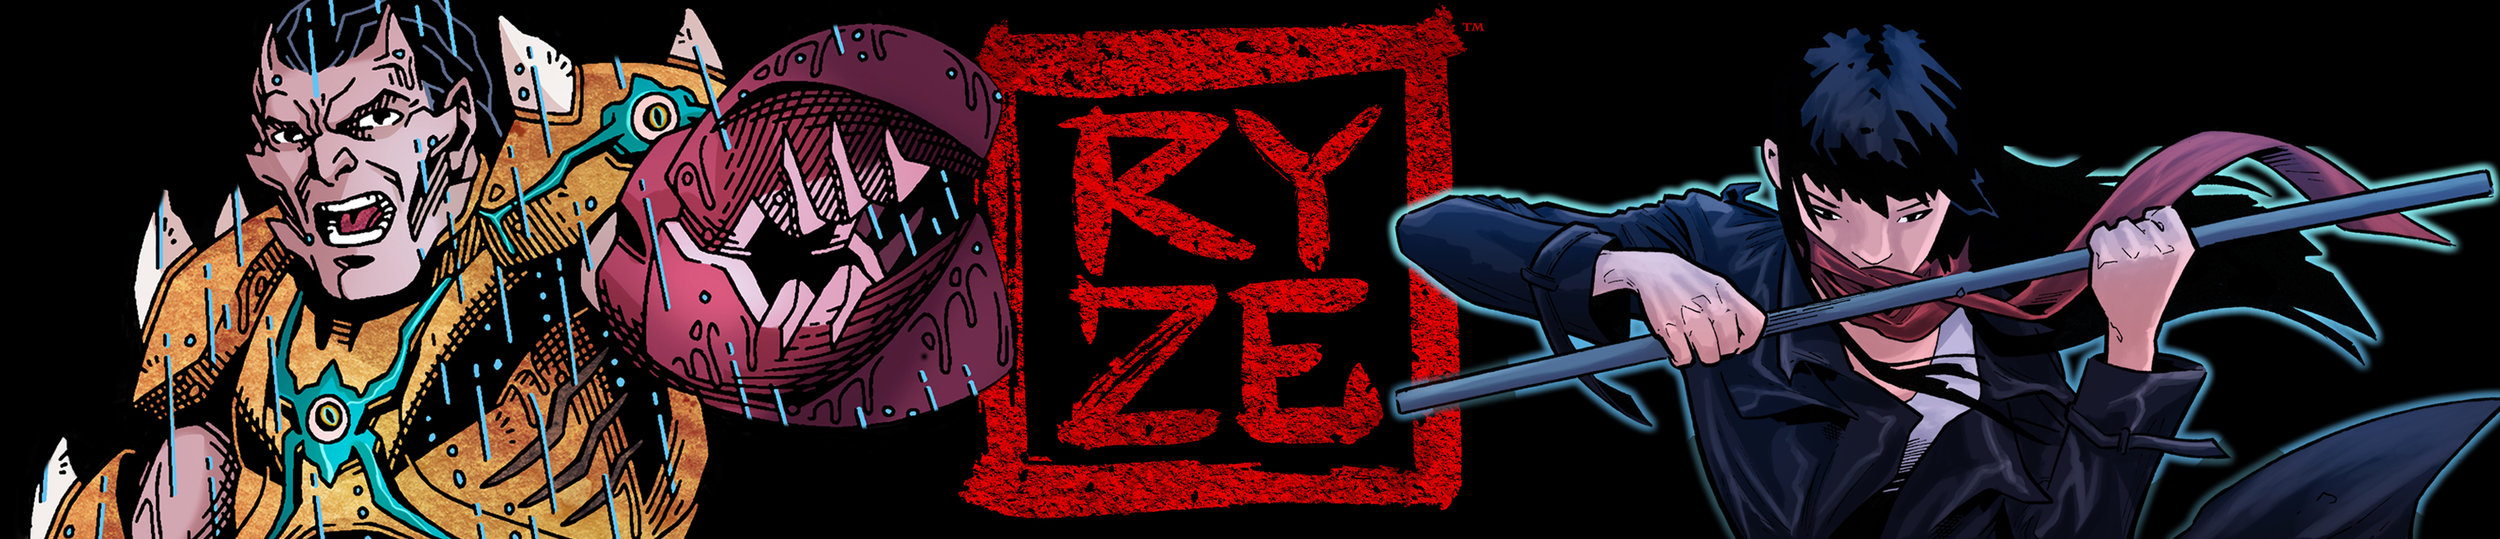 Welcome_to_RYZE 2.jpg